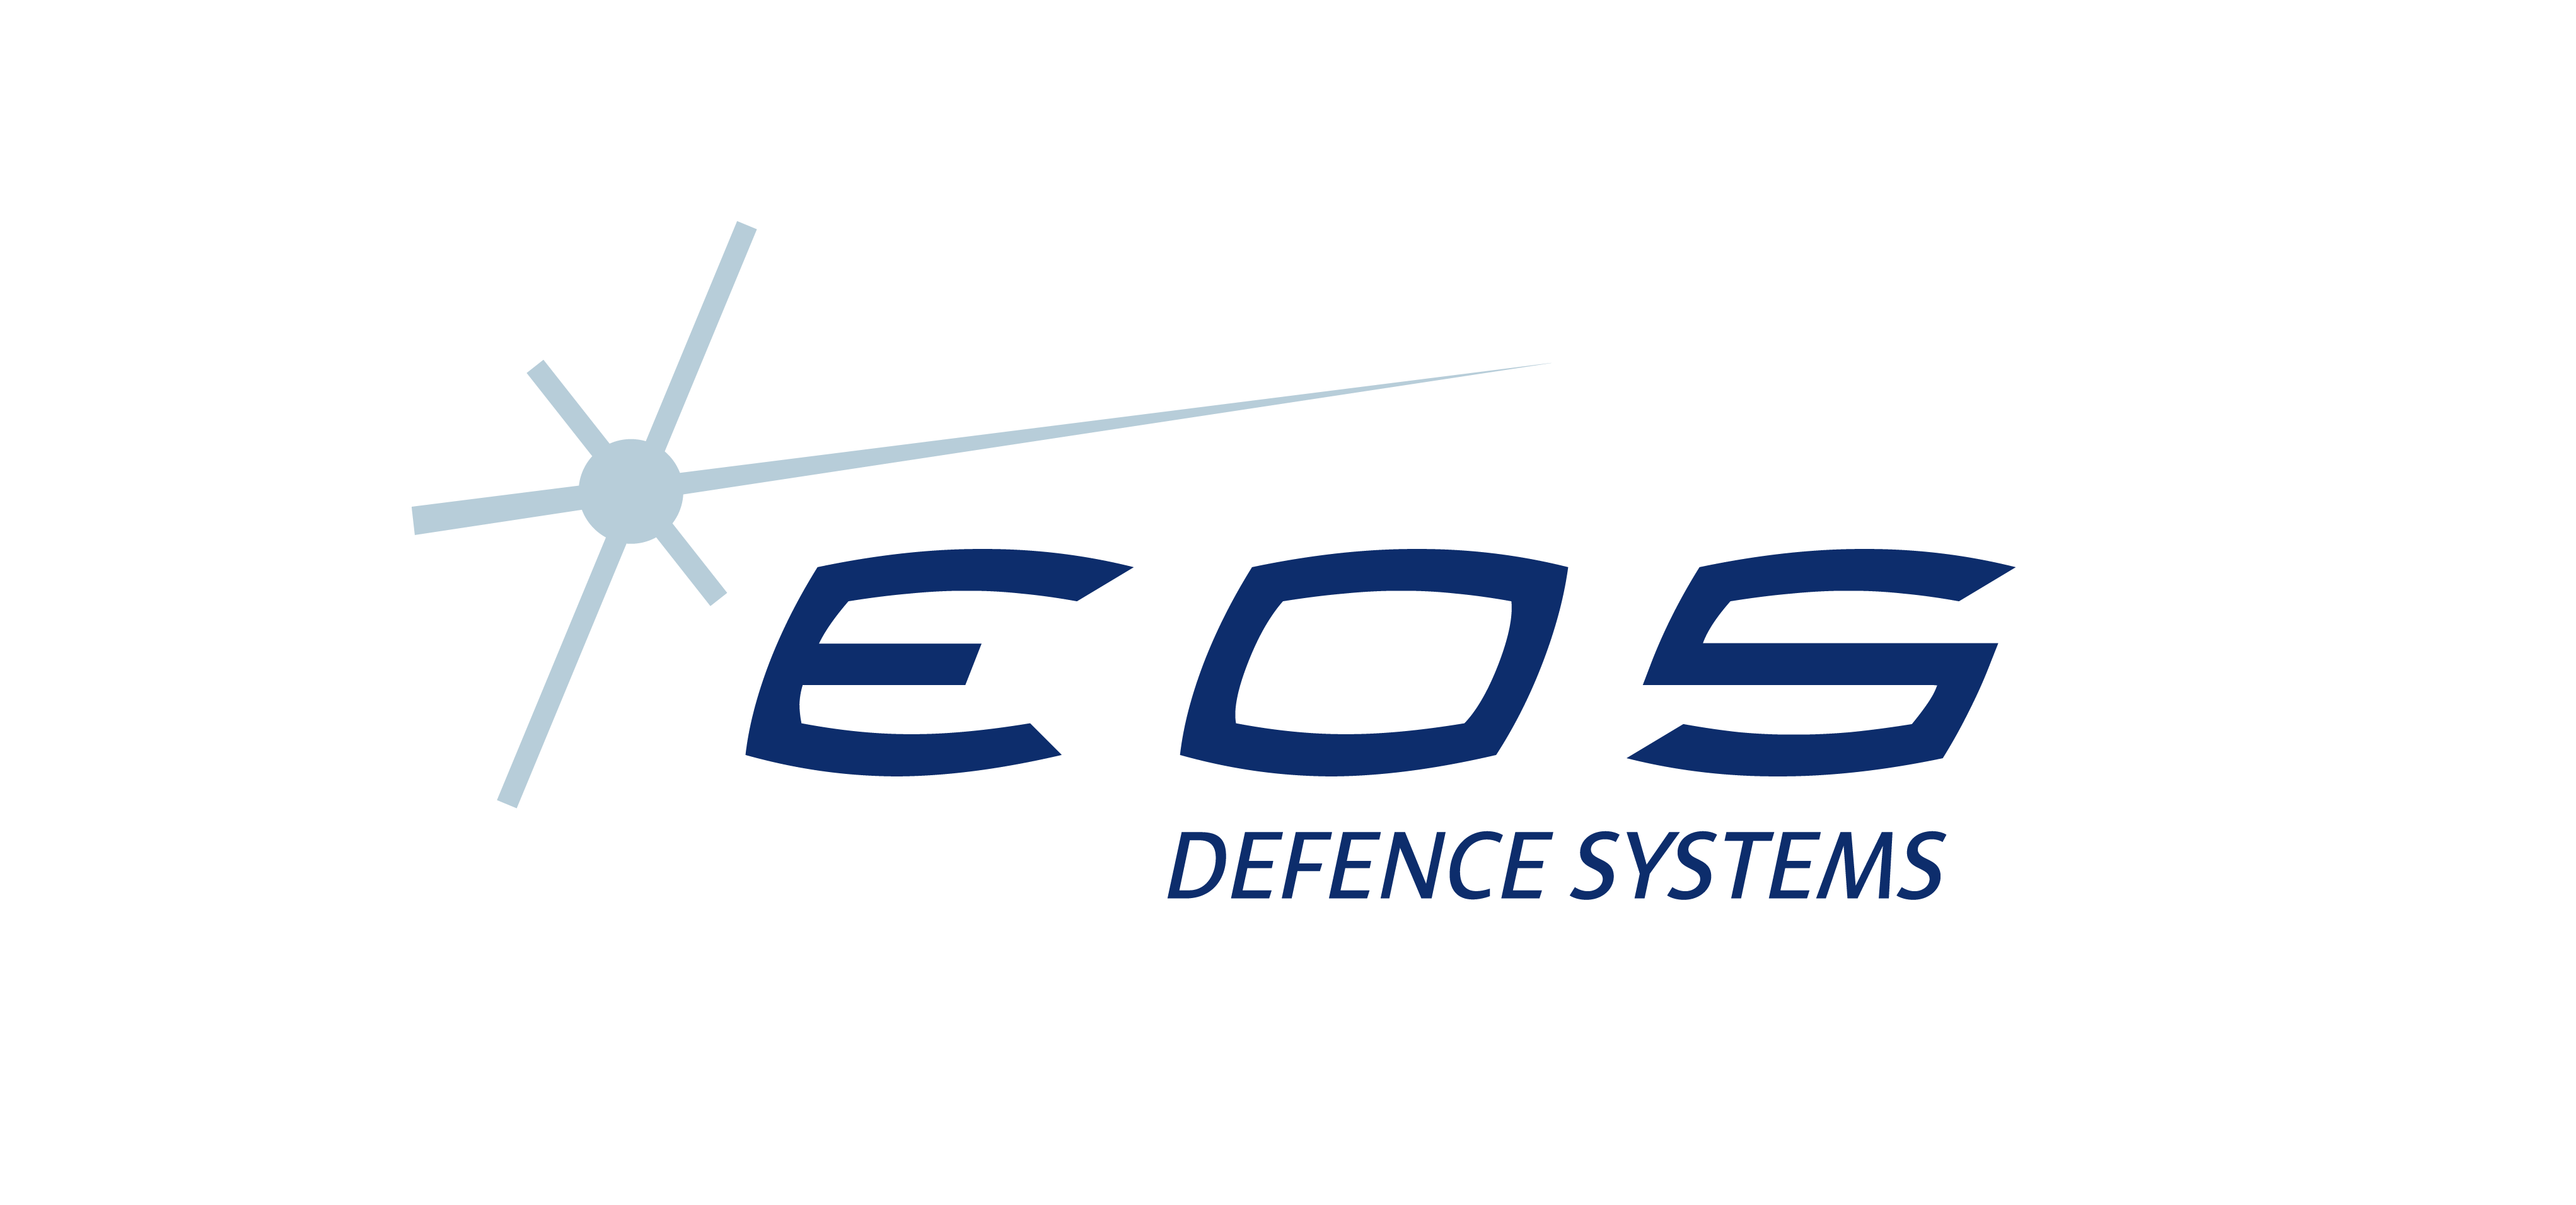 EOS Defence Systems